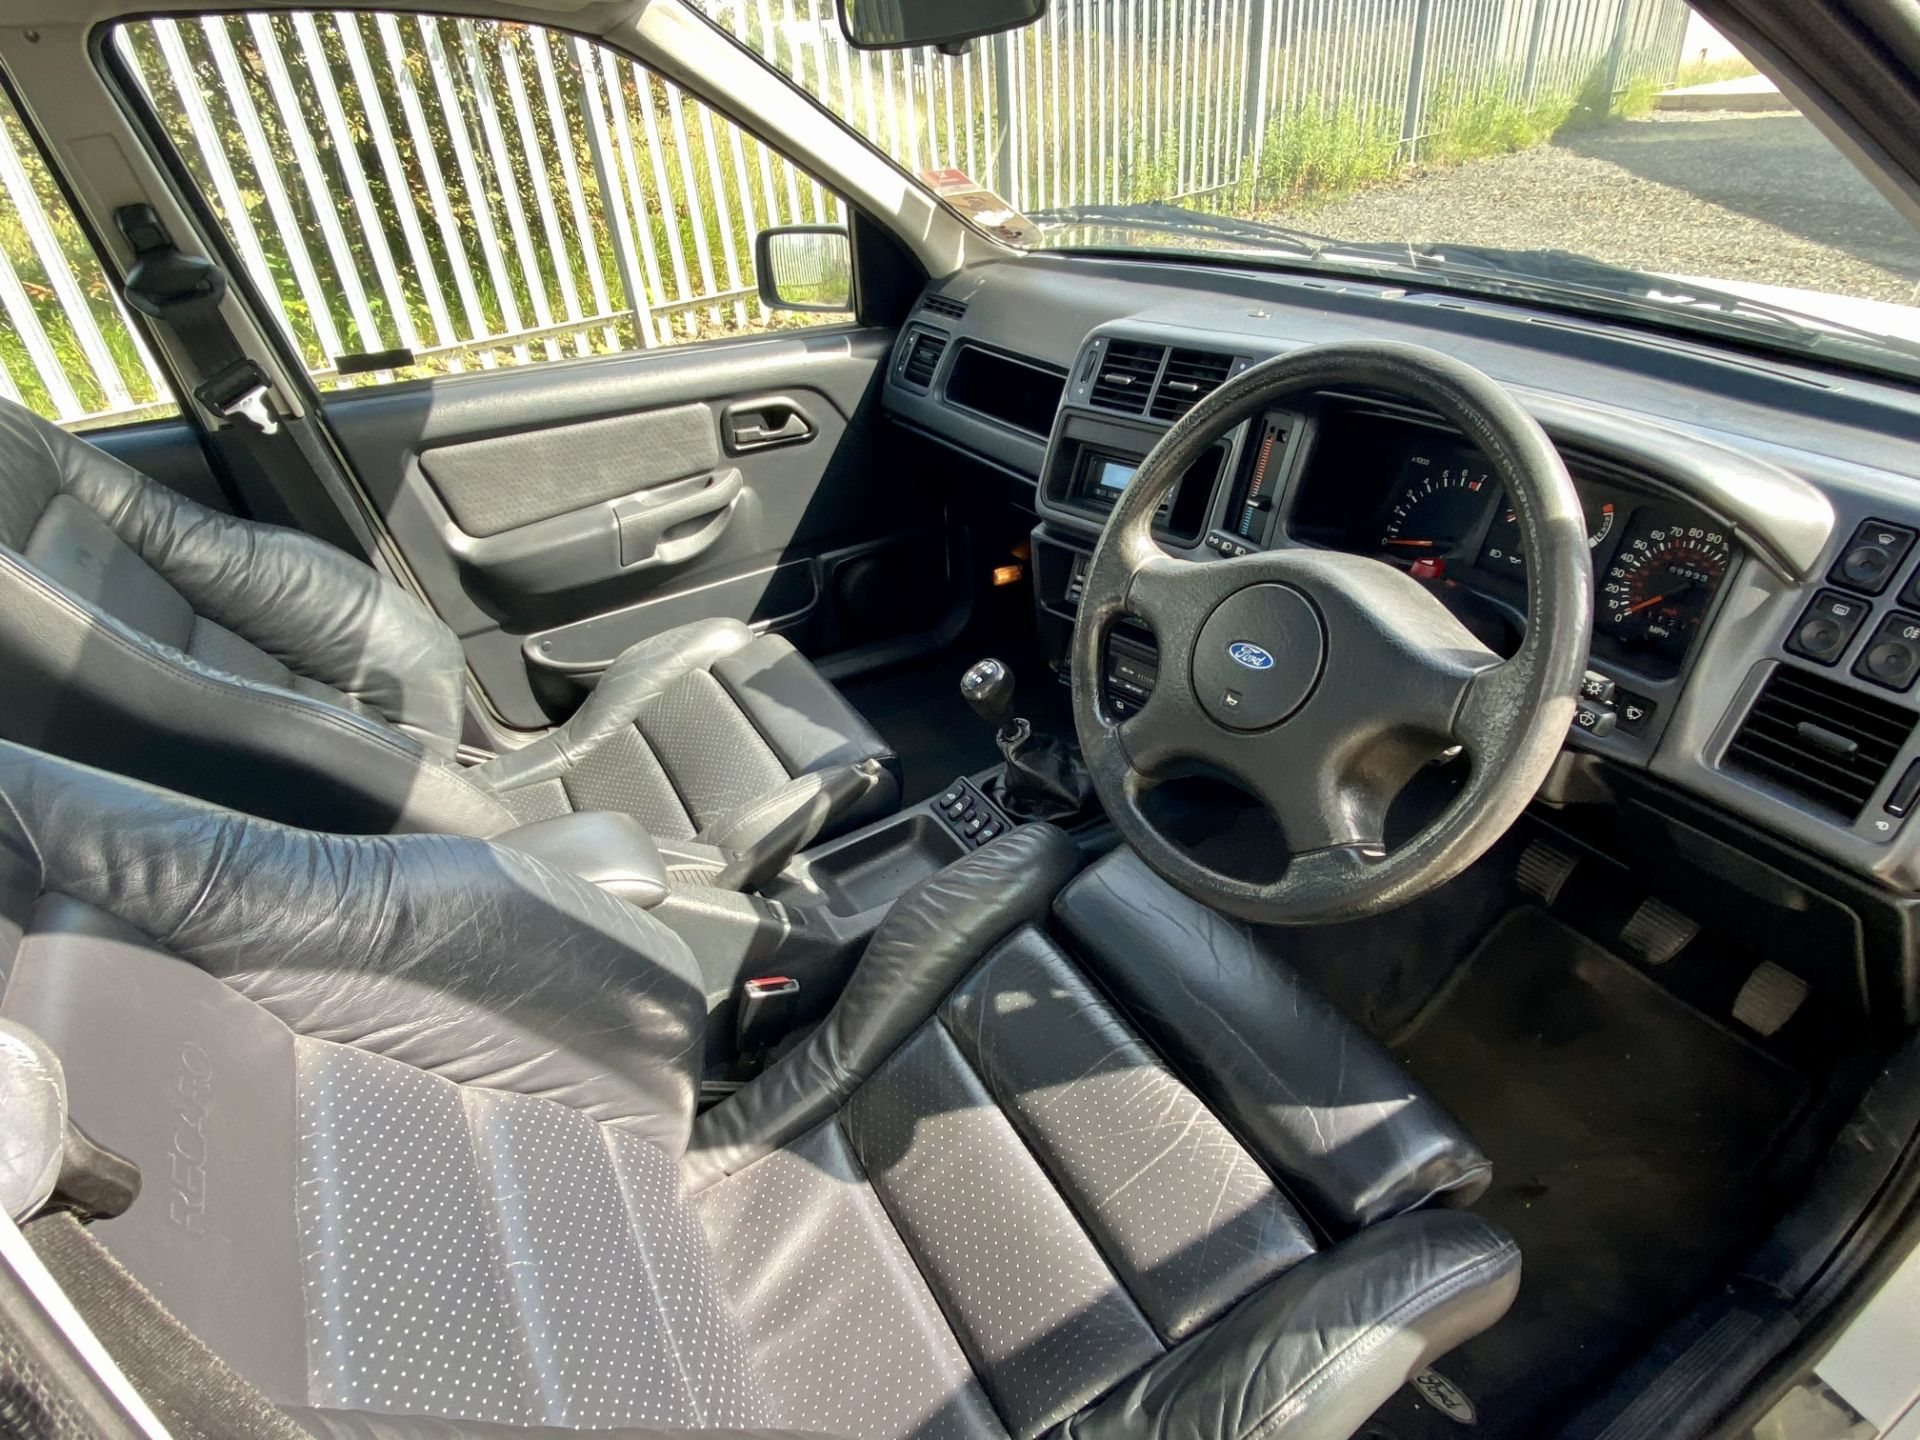 Ford Sierra Sapphire Cosworth 4x4 - Image 33 of 55